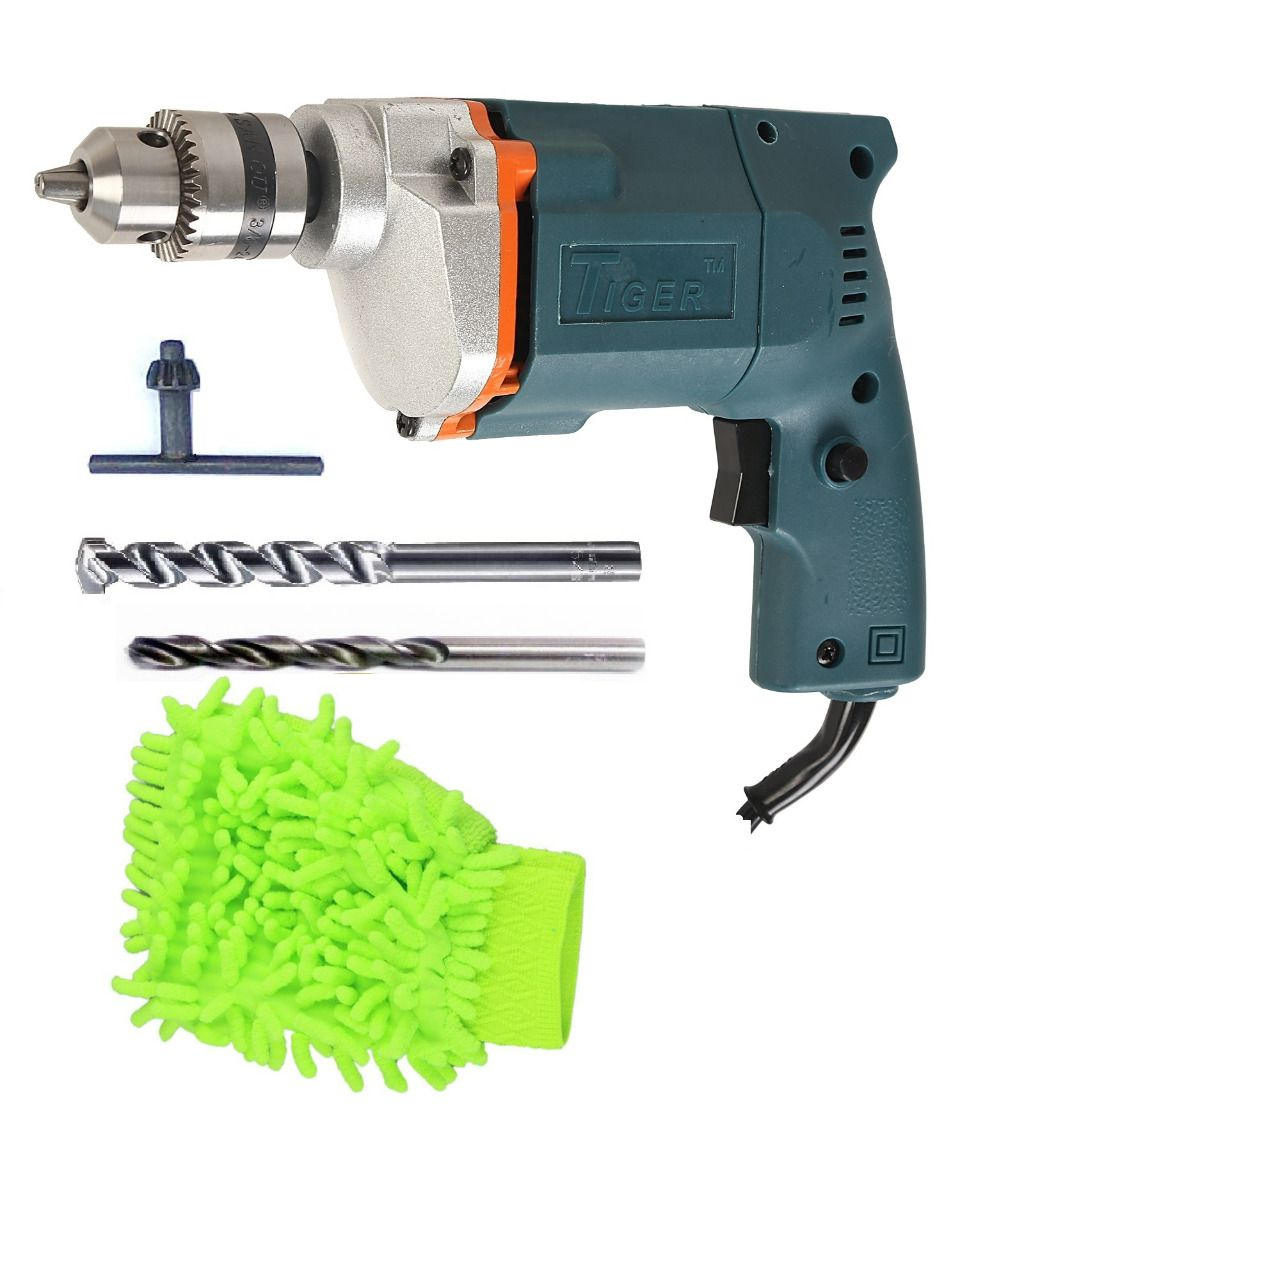 Tiger 10mm 350W Drill Machine with 2 High Quality Drill Bits + 1 Microfiber Duster Glove